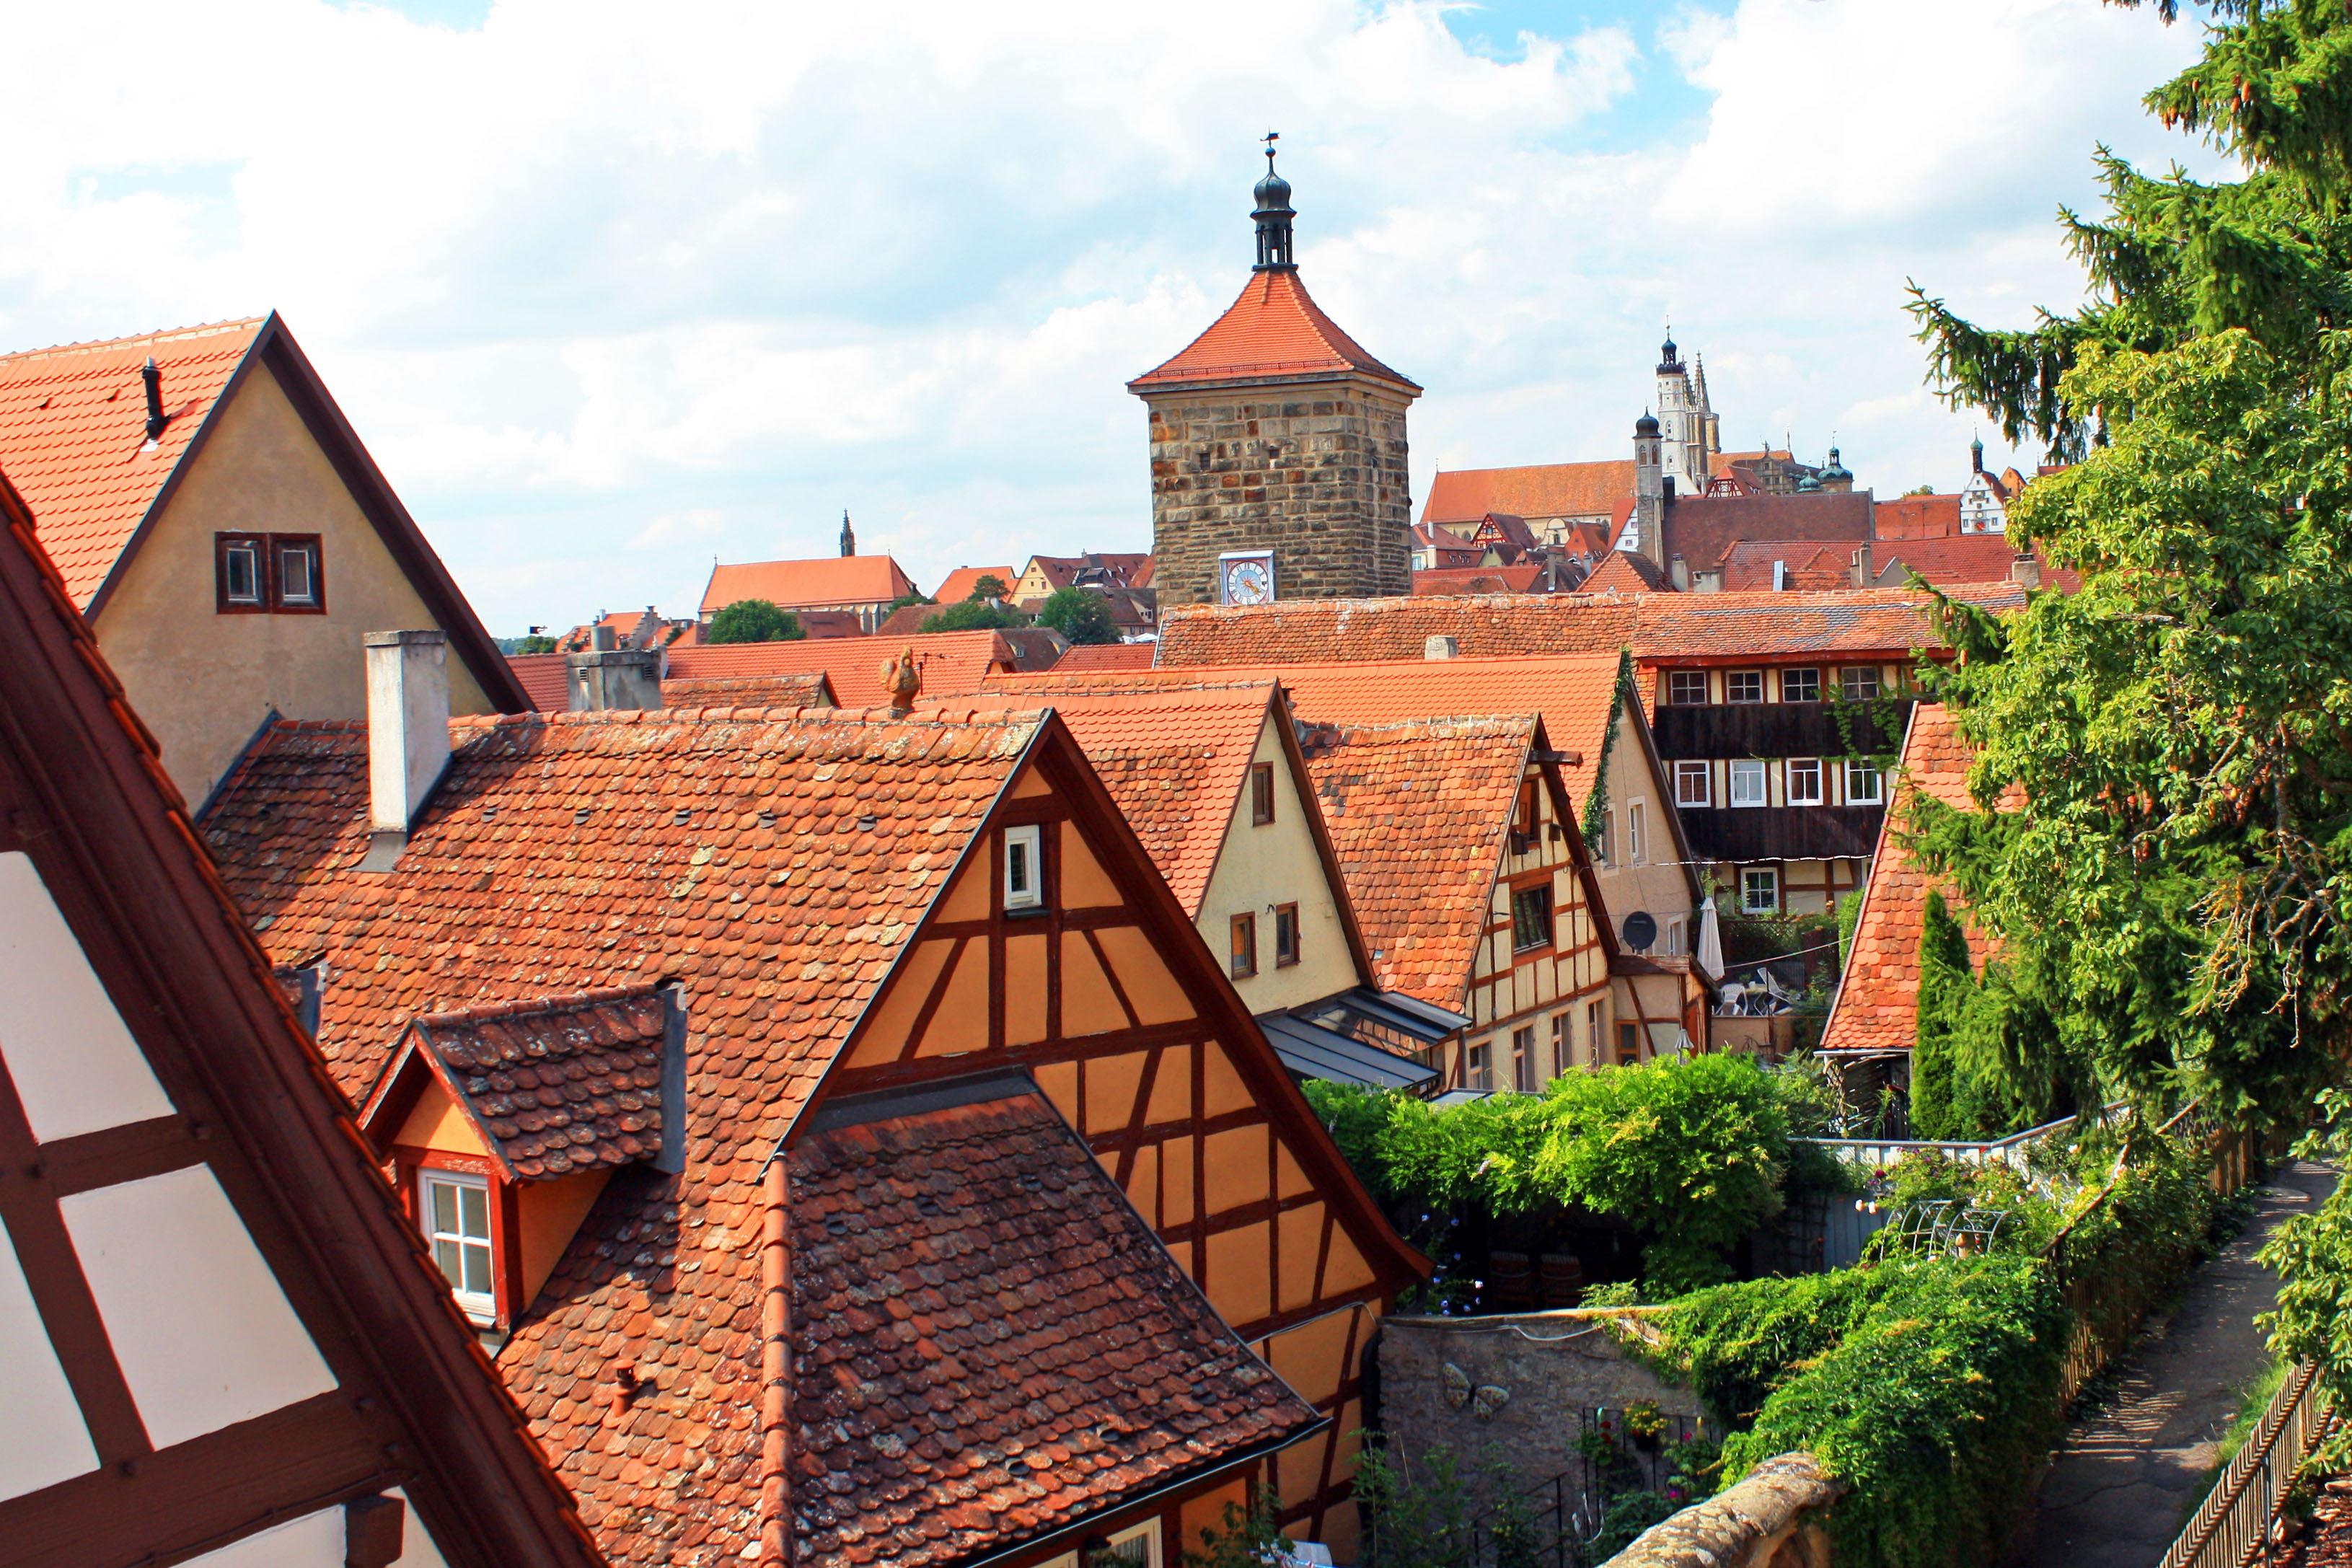 A town wall view of Rothenburg with a tower in the distance.